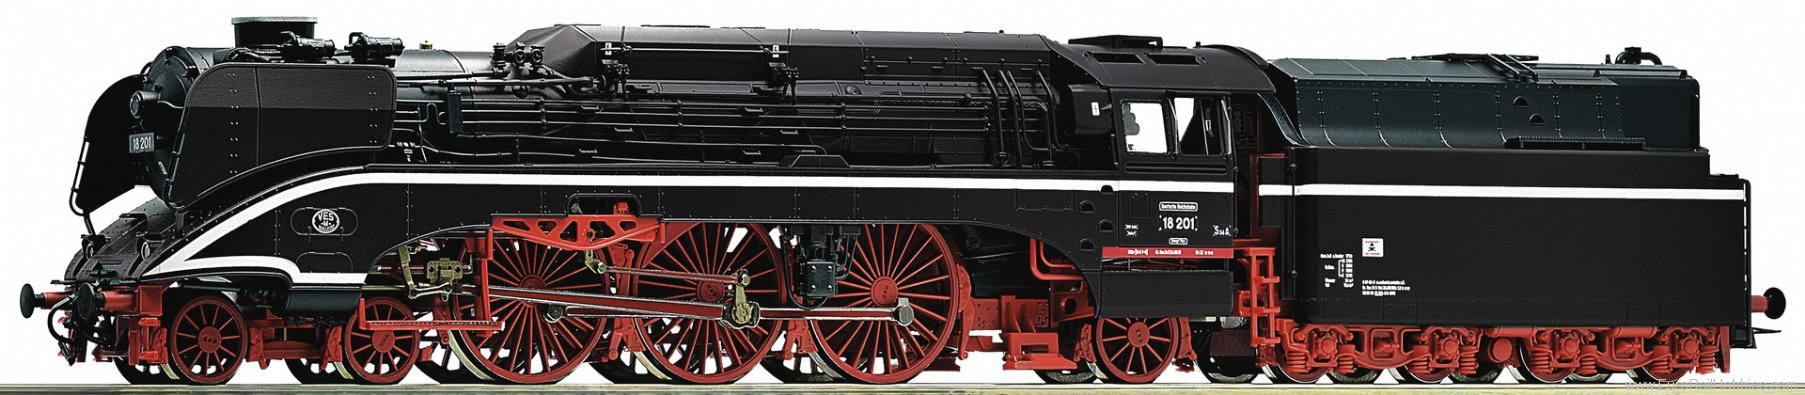 Roco 72246 Steam locomotive 18 201, DR (Factory Sold Out